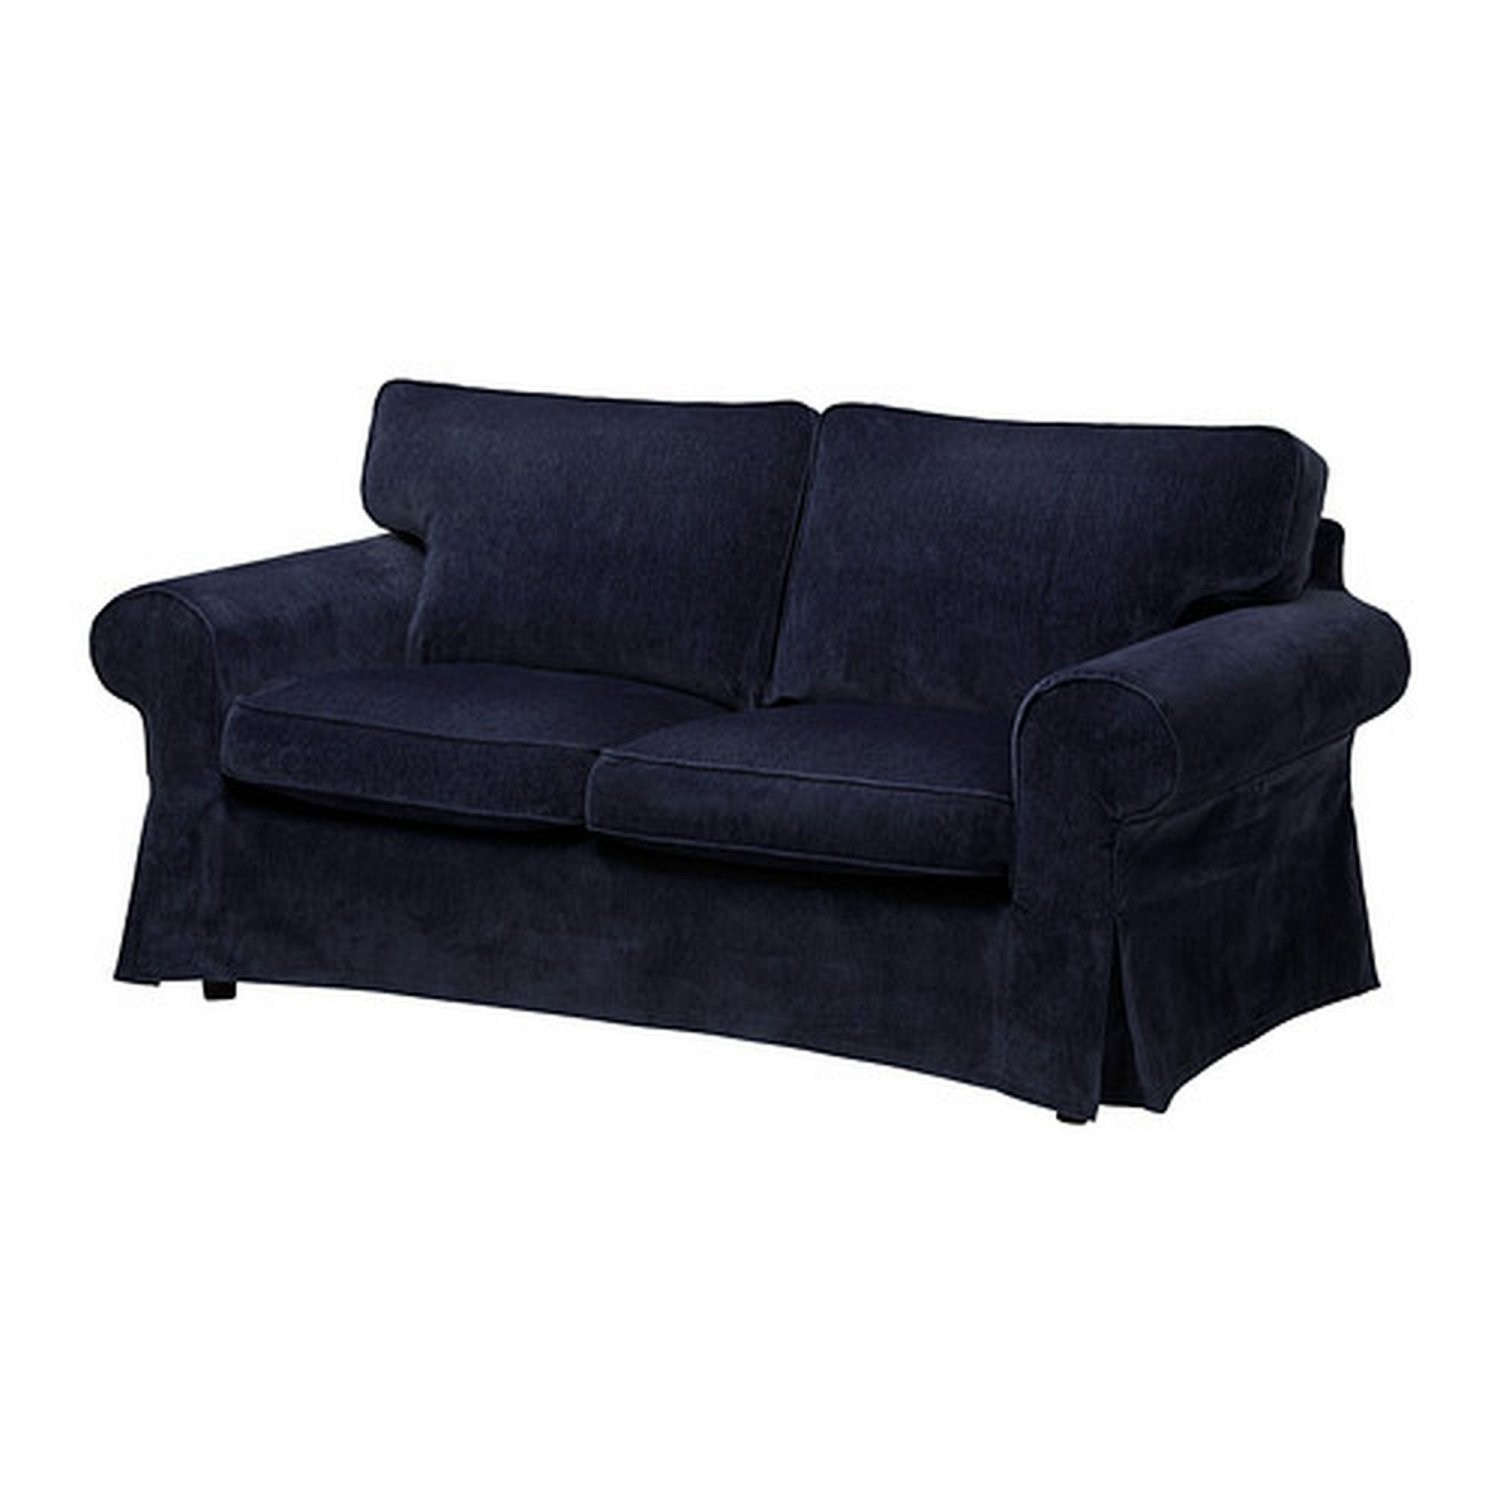 Ikea ektorp 2 seat sofa slipcover loveseat cover vellinge dark blue Loveseat slipcover